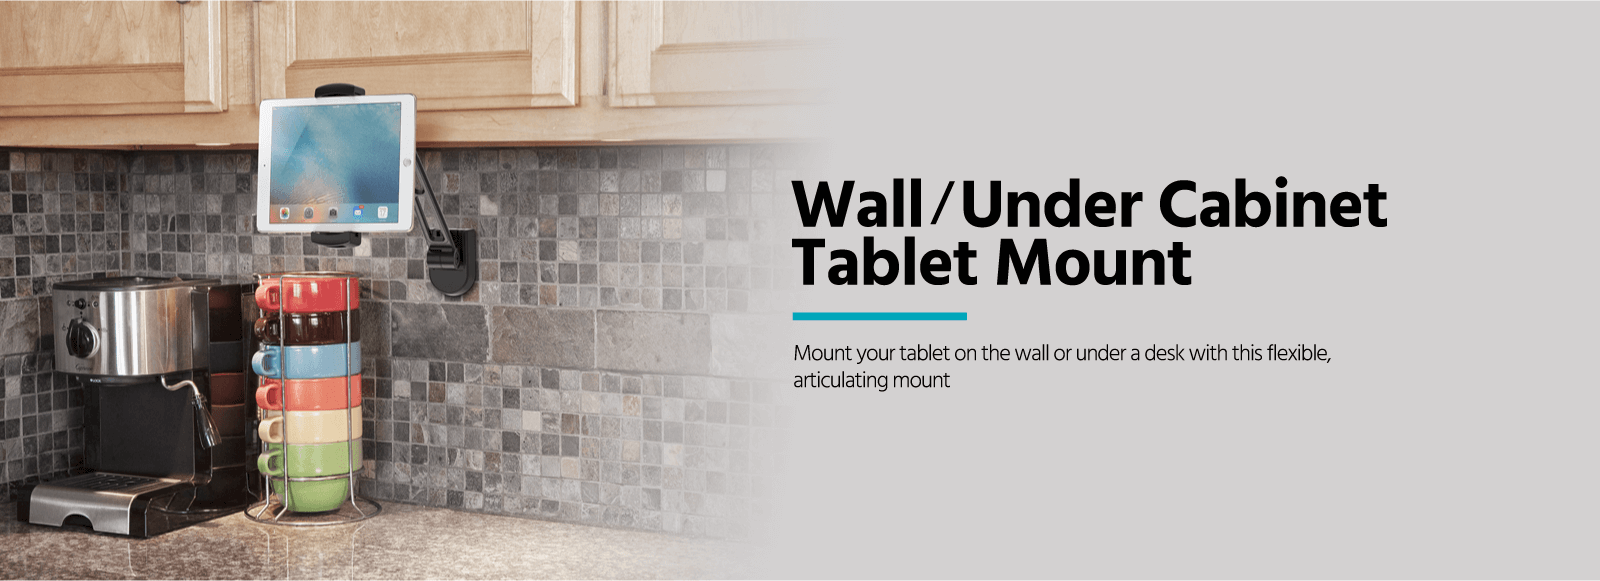 Wall/Under Cabinet Tablet Mount